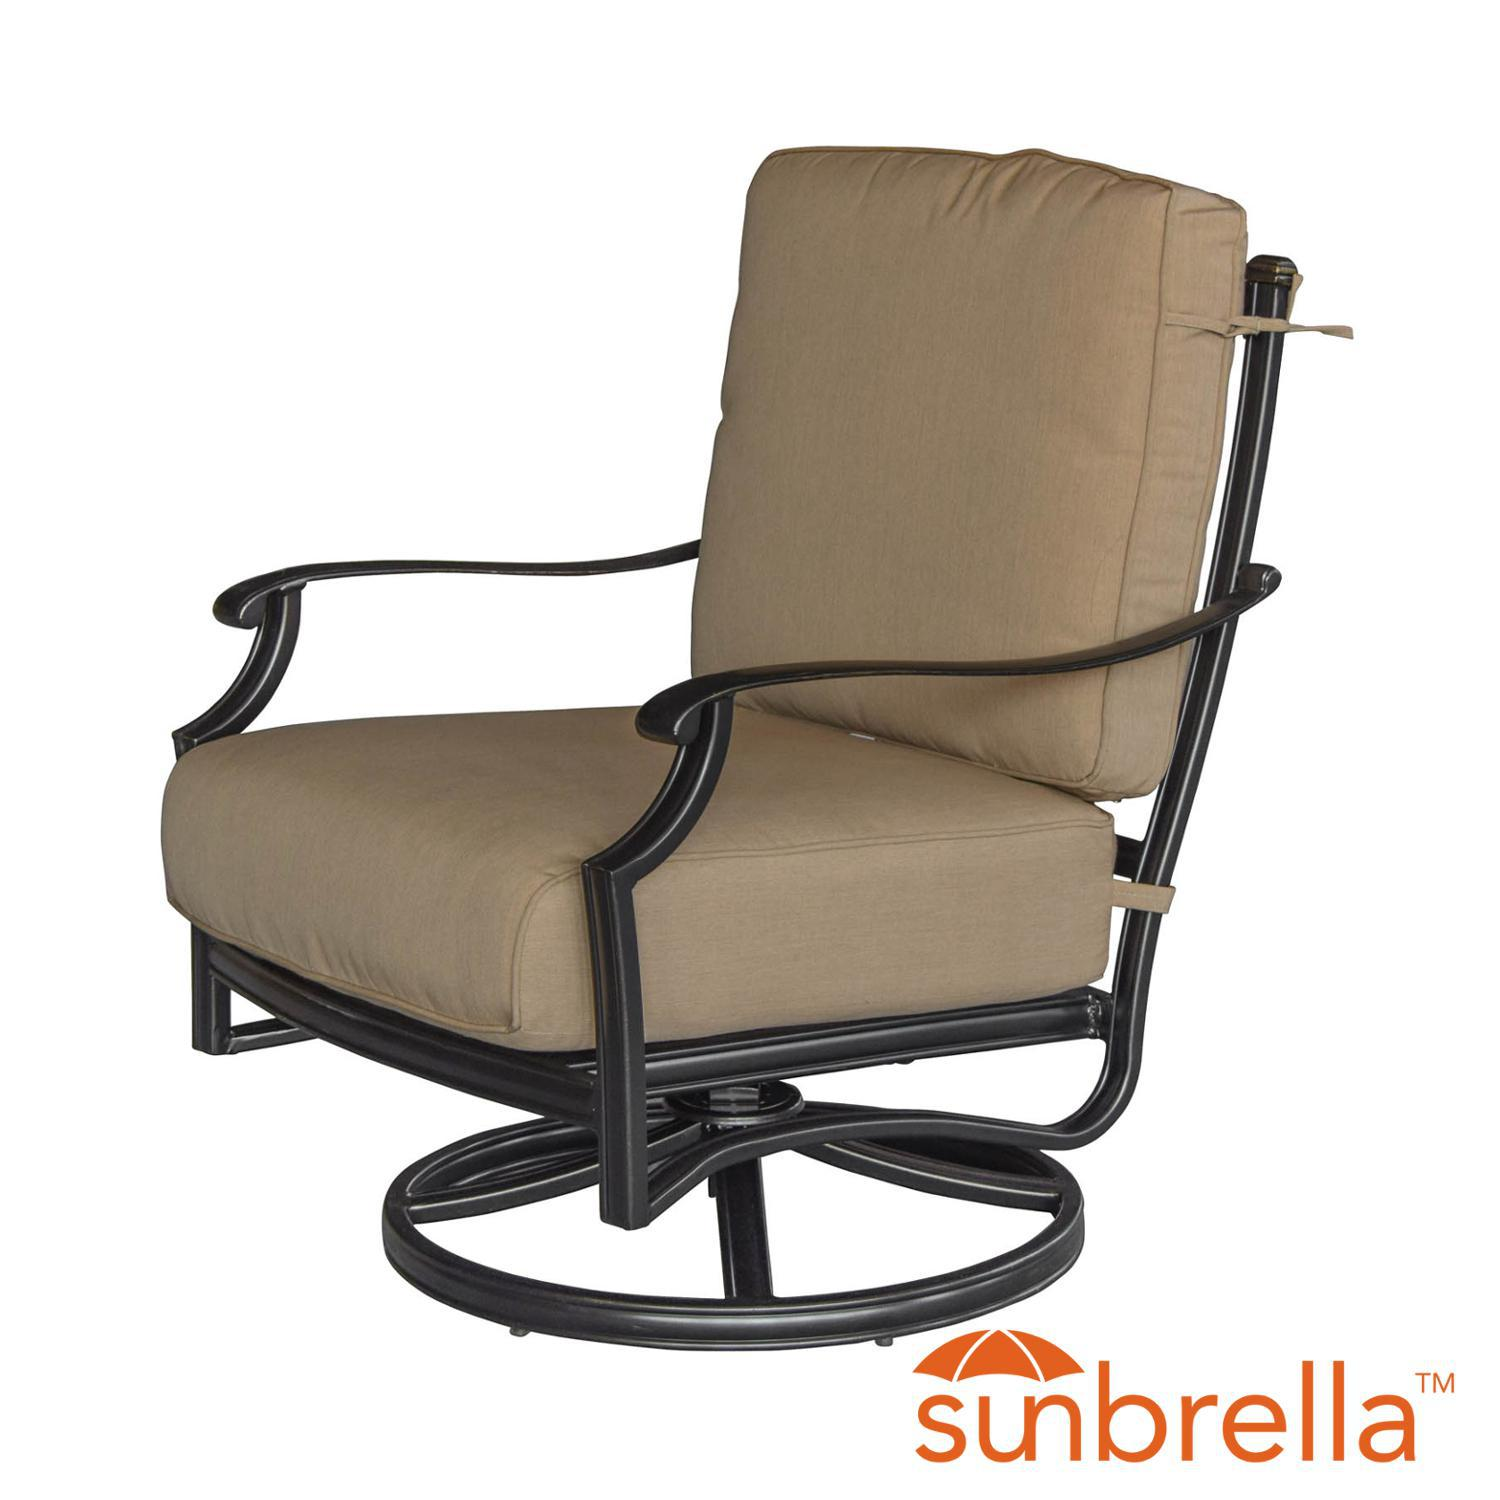 swivel chair in spanish painting metal folding chairs bocage cast aluminum patio rocker club w sunbrella heather beige cushions by lakeview outdoor designs walmart com